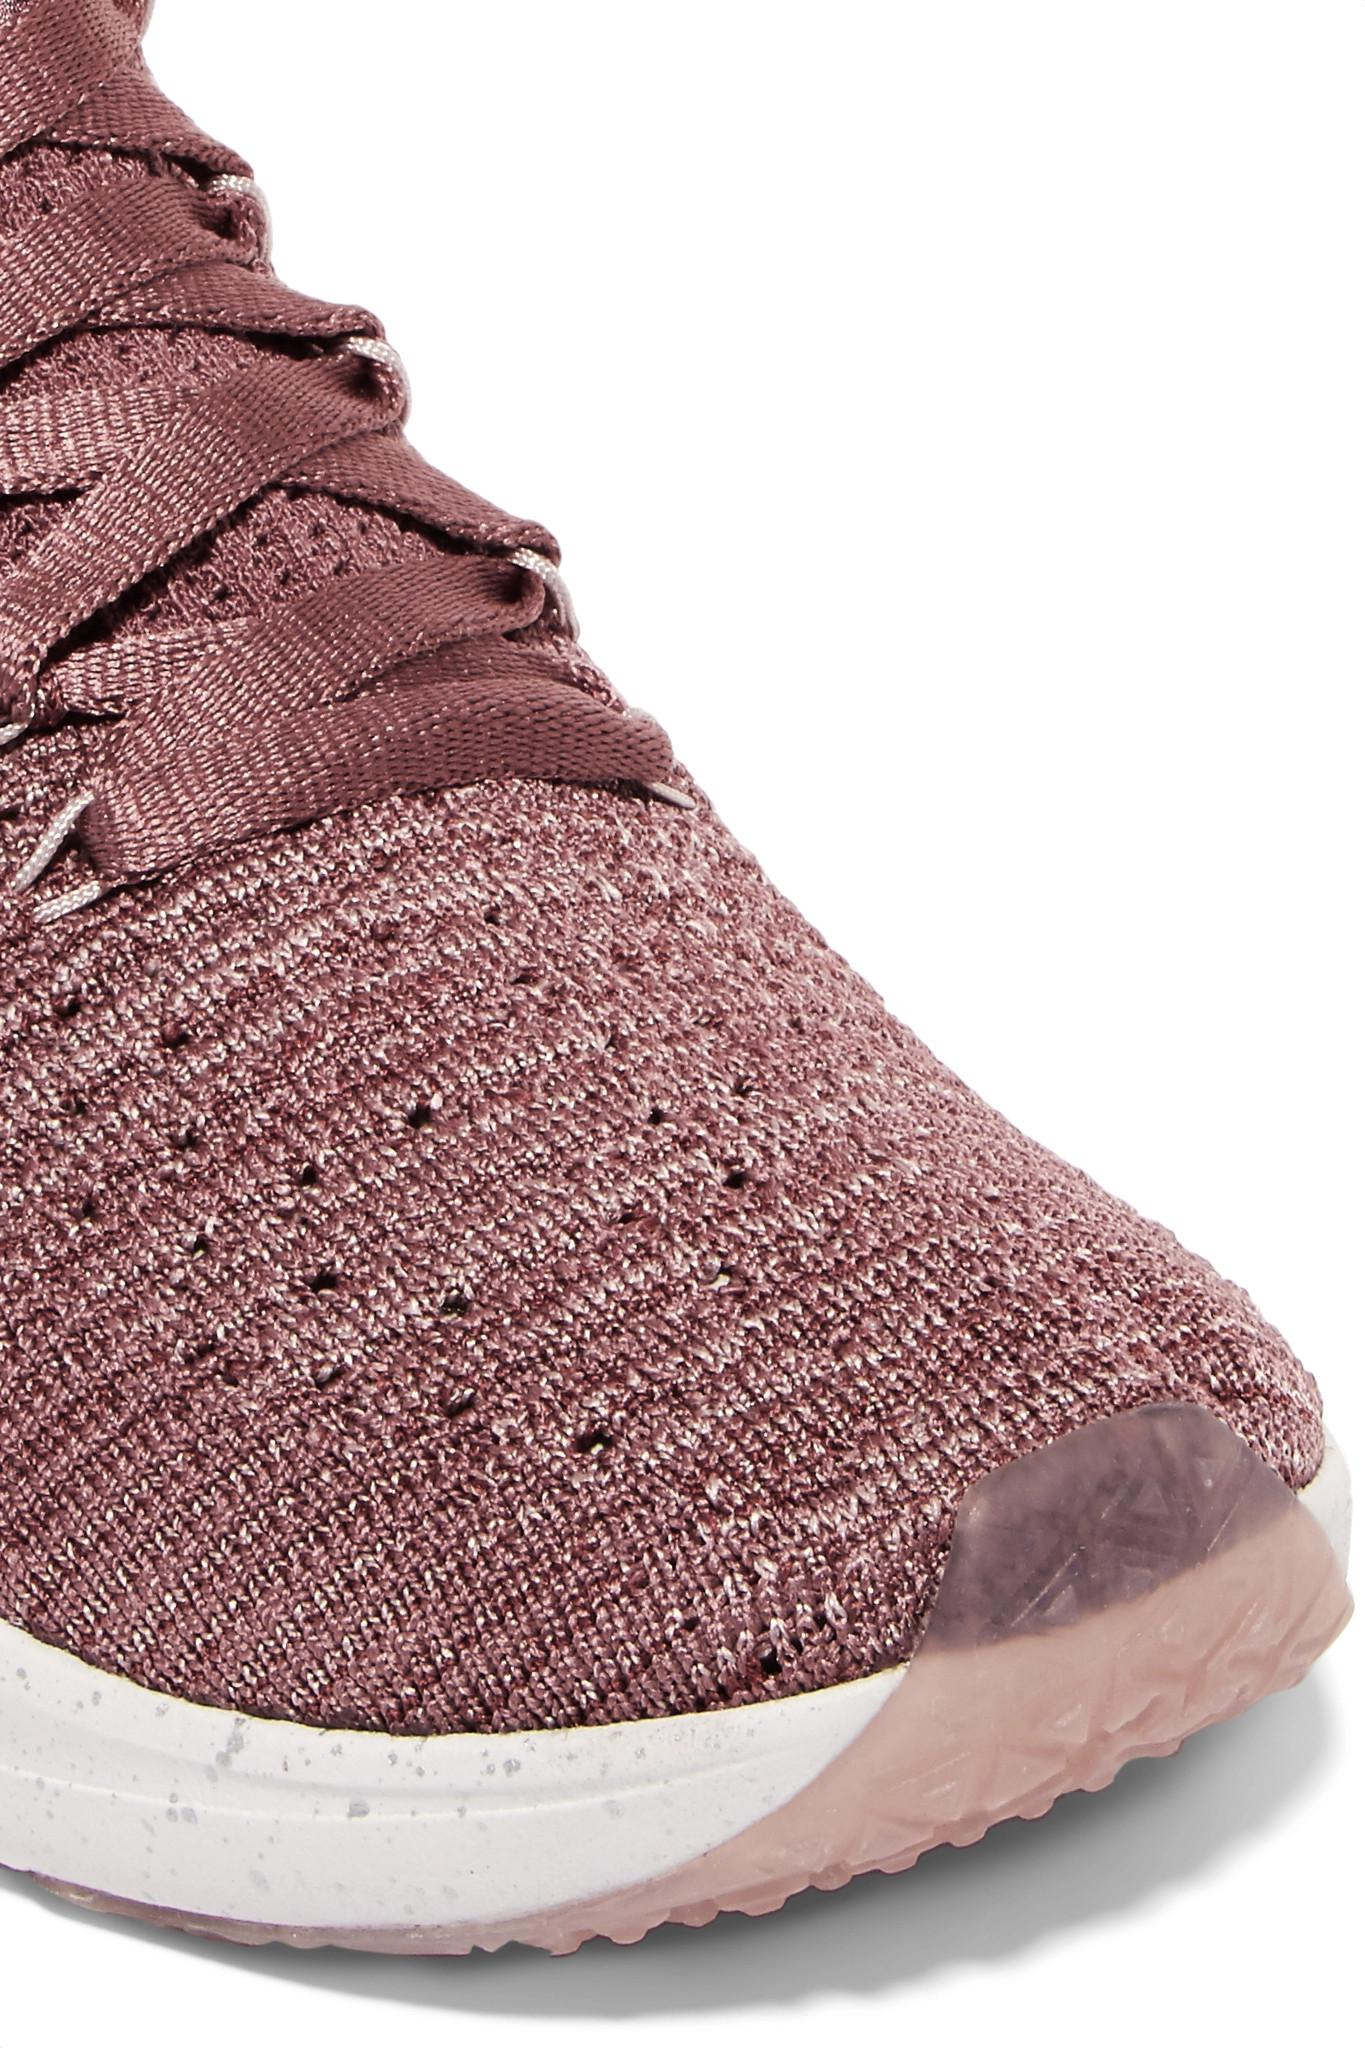 6067a48943b2e Lyst - Nike Air Zoom Fearless Flyknit Sneakers in Pink